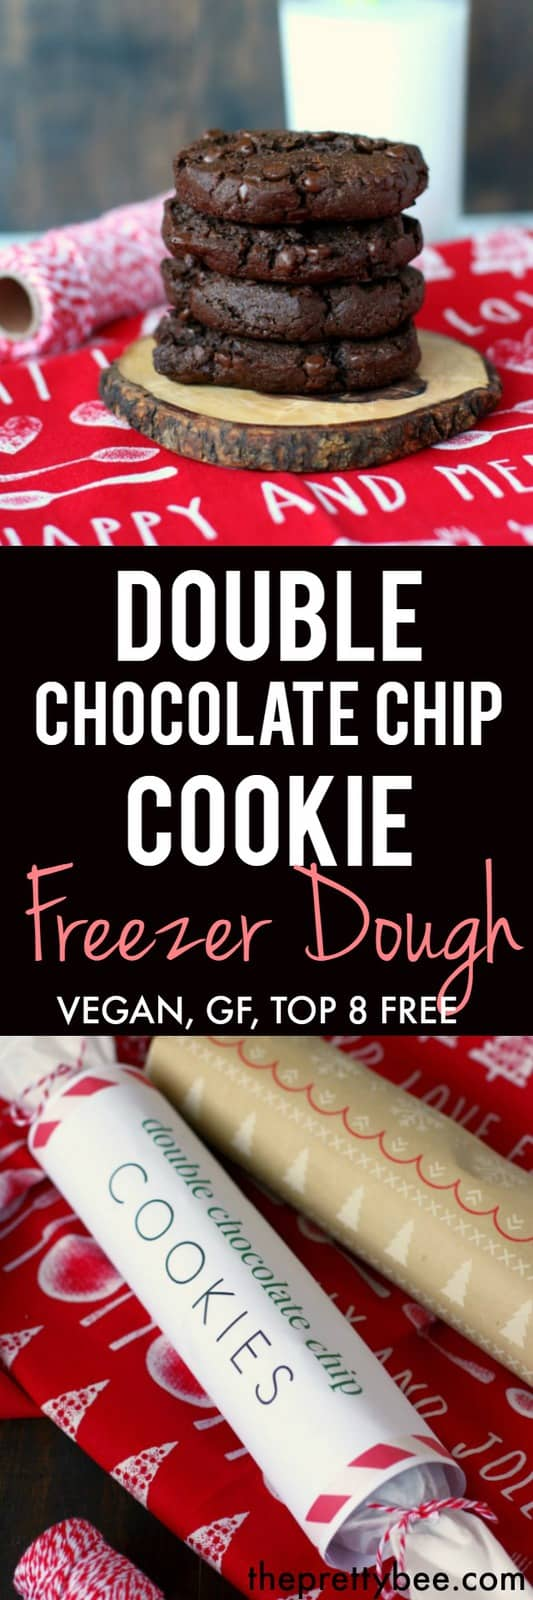 Give the gift of cookie dough! This recipe for double chocolate chip cookie freezer dough is gluten free, vegan, and allergy friendly!